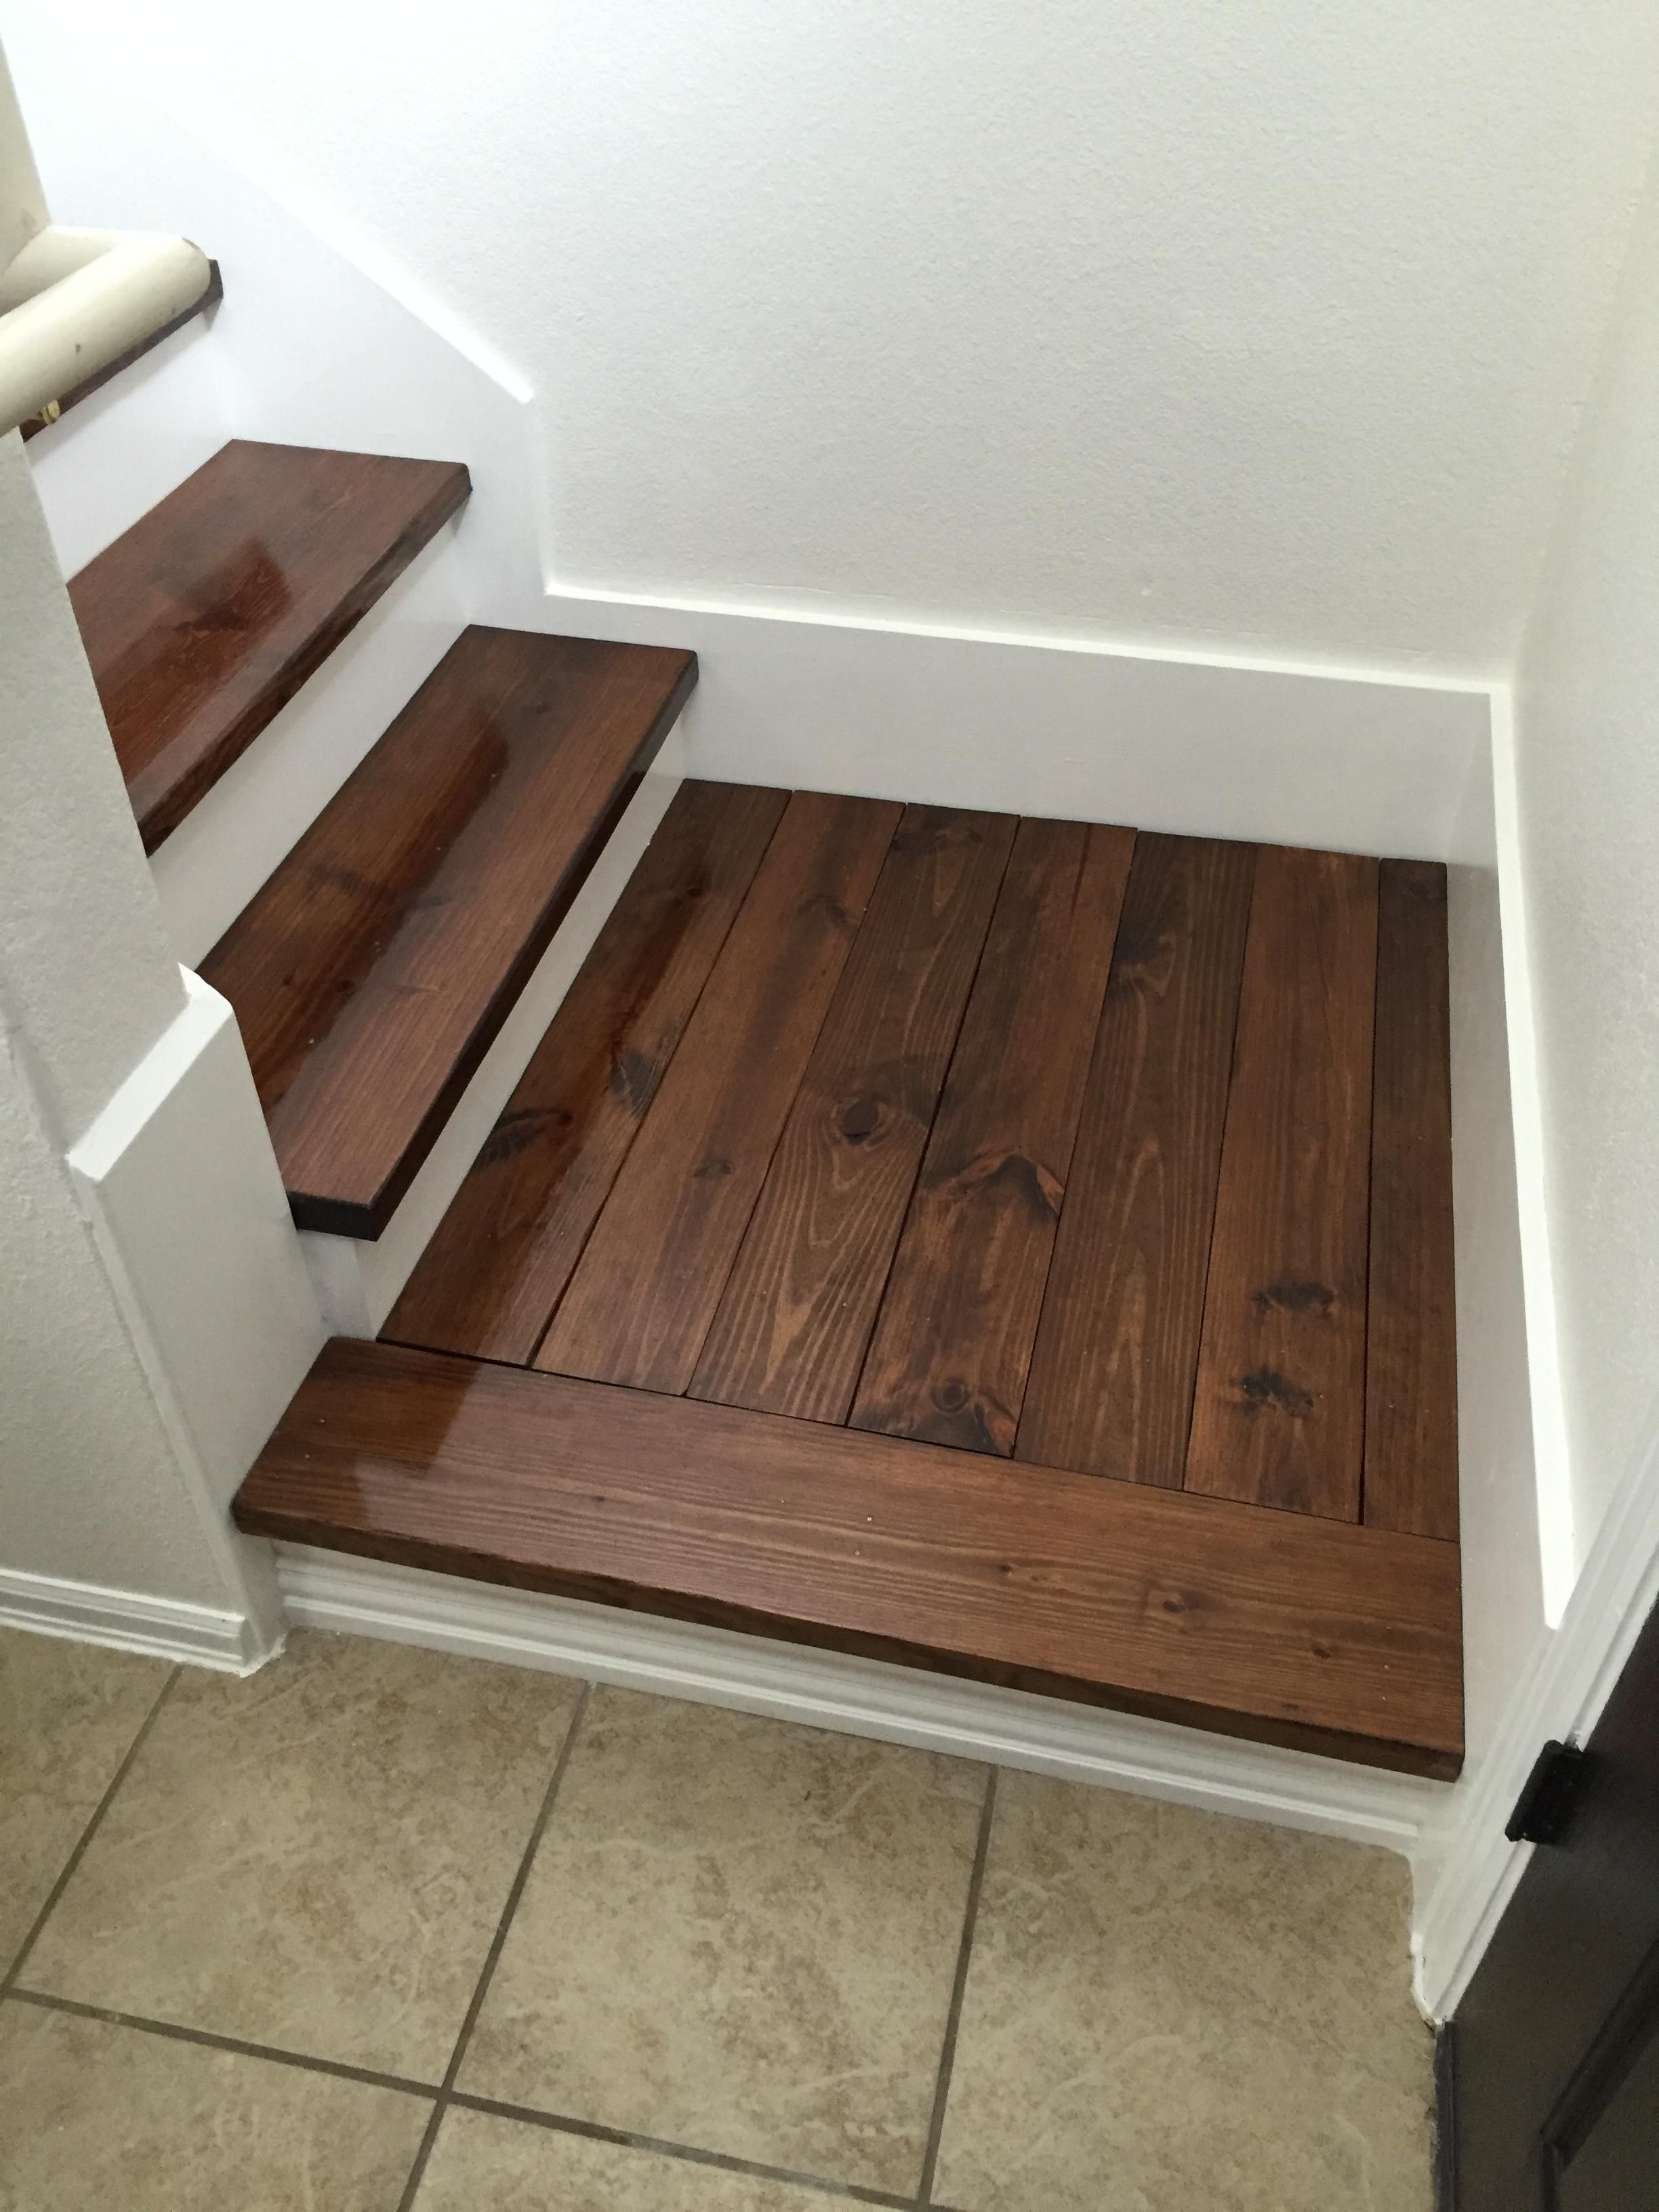 Replaced The Carpet On Our Stairs With Wood Quickcrafter